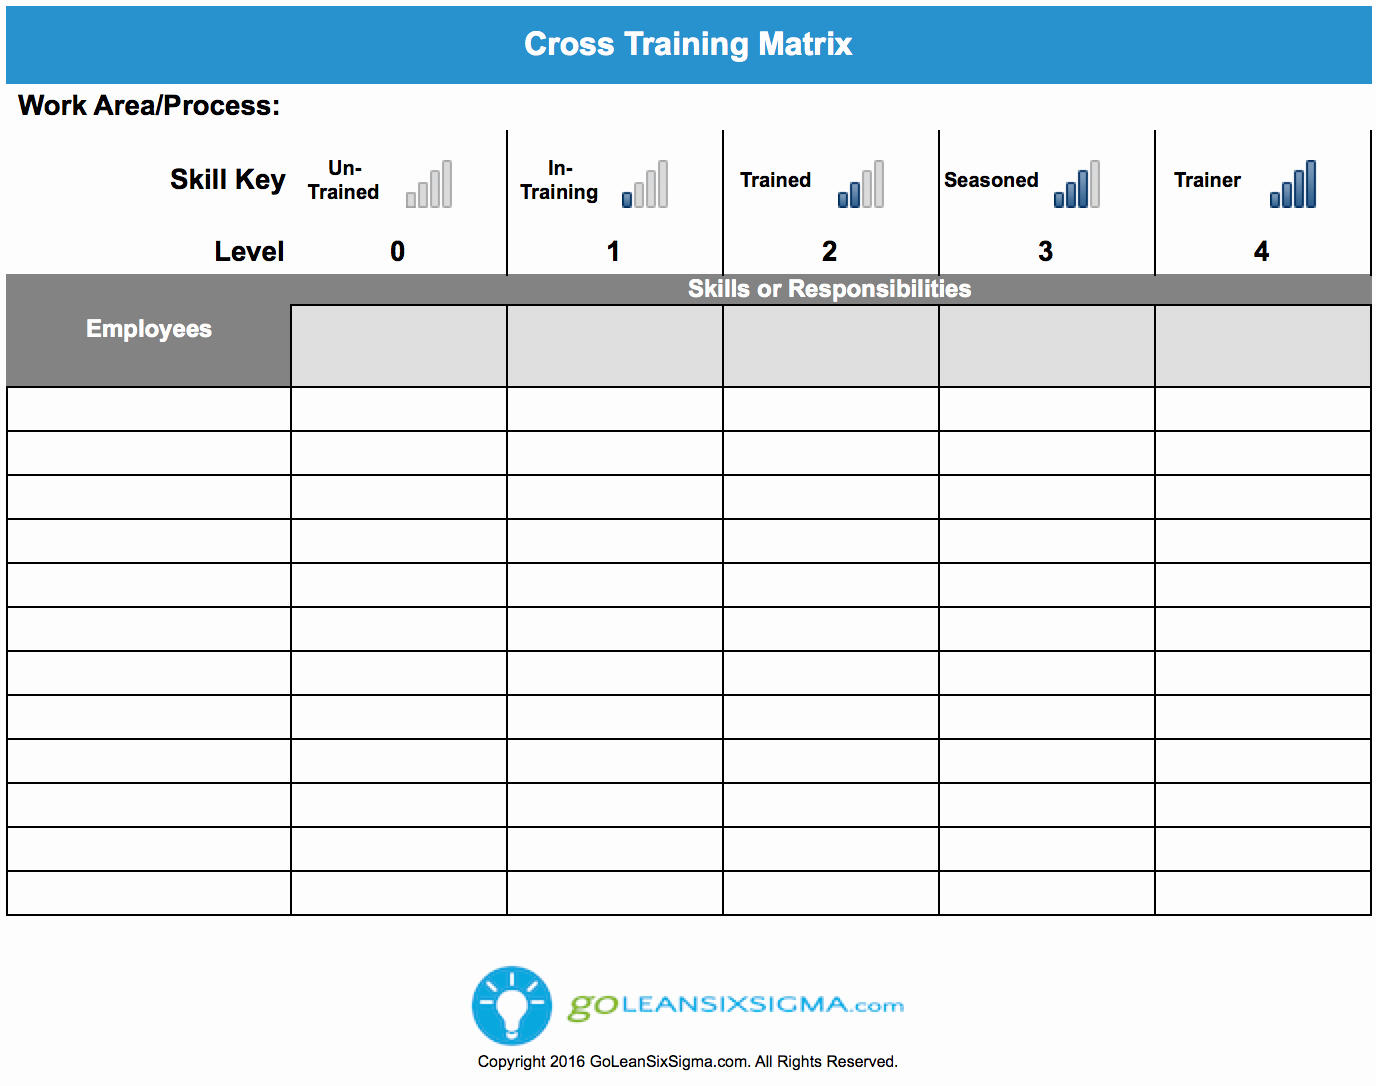 Training Matrix Template Excel New Staff Training Matrix Template Excel 1000 Images About